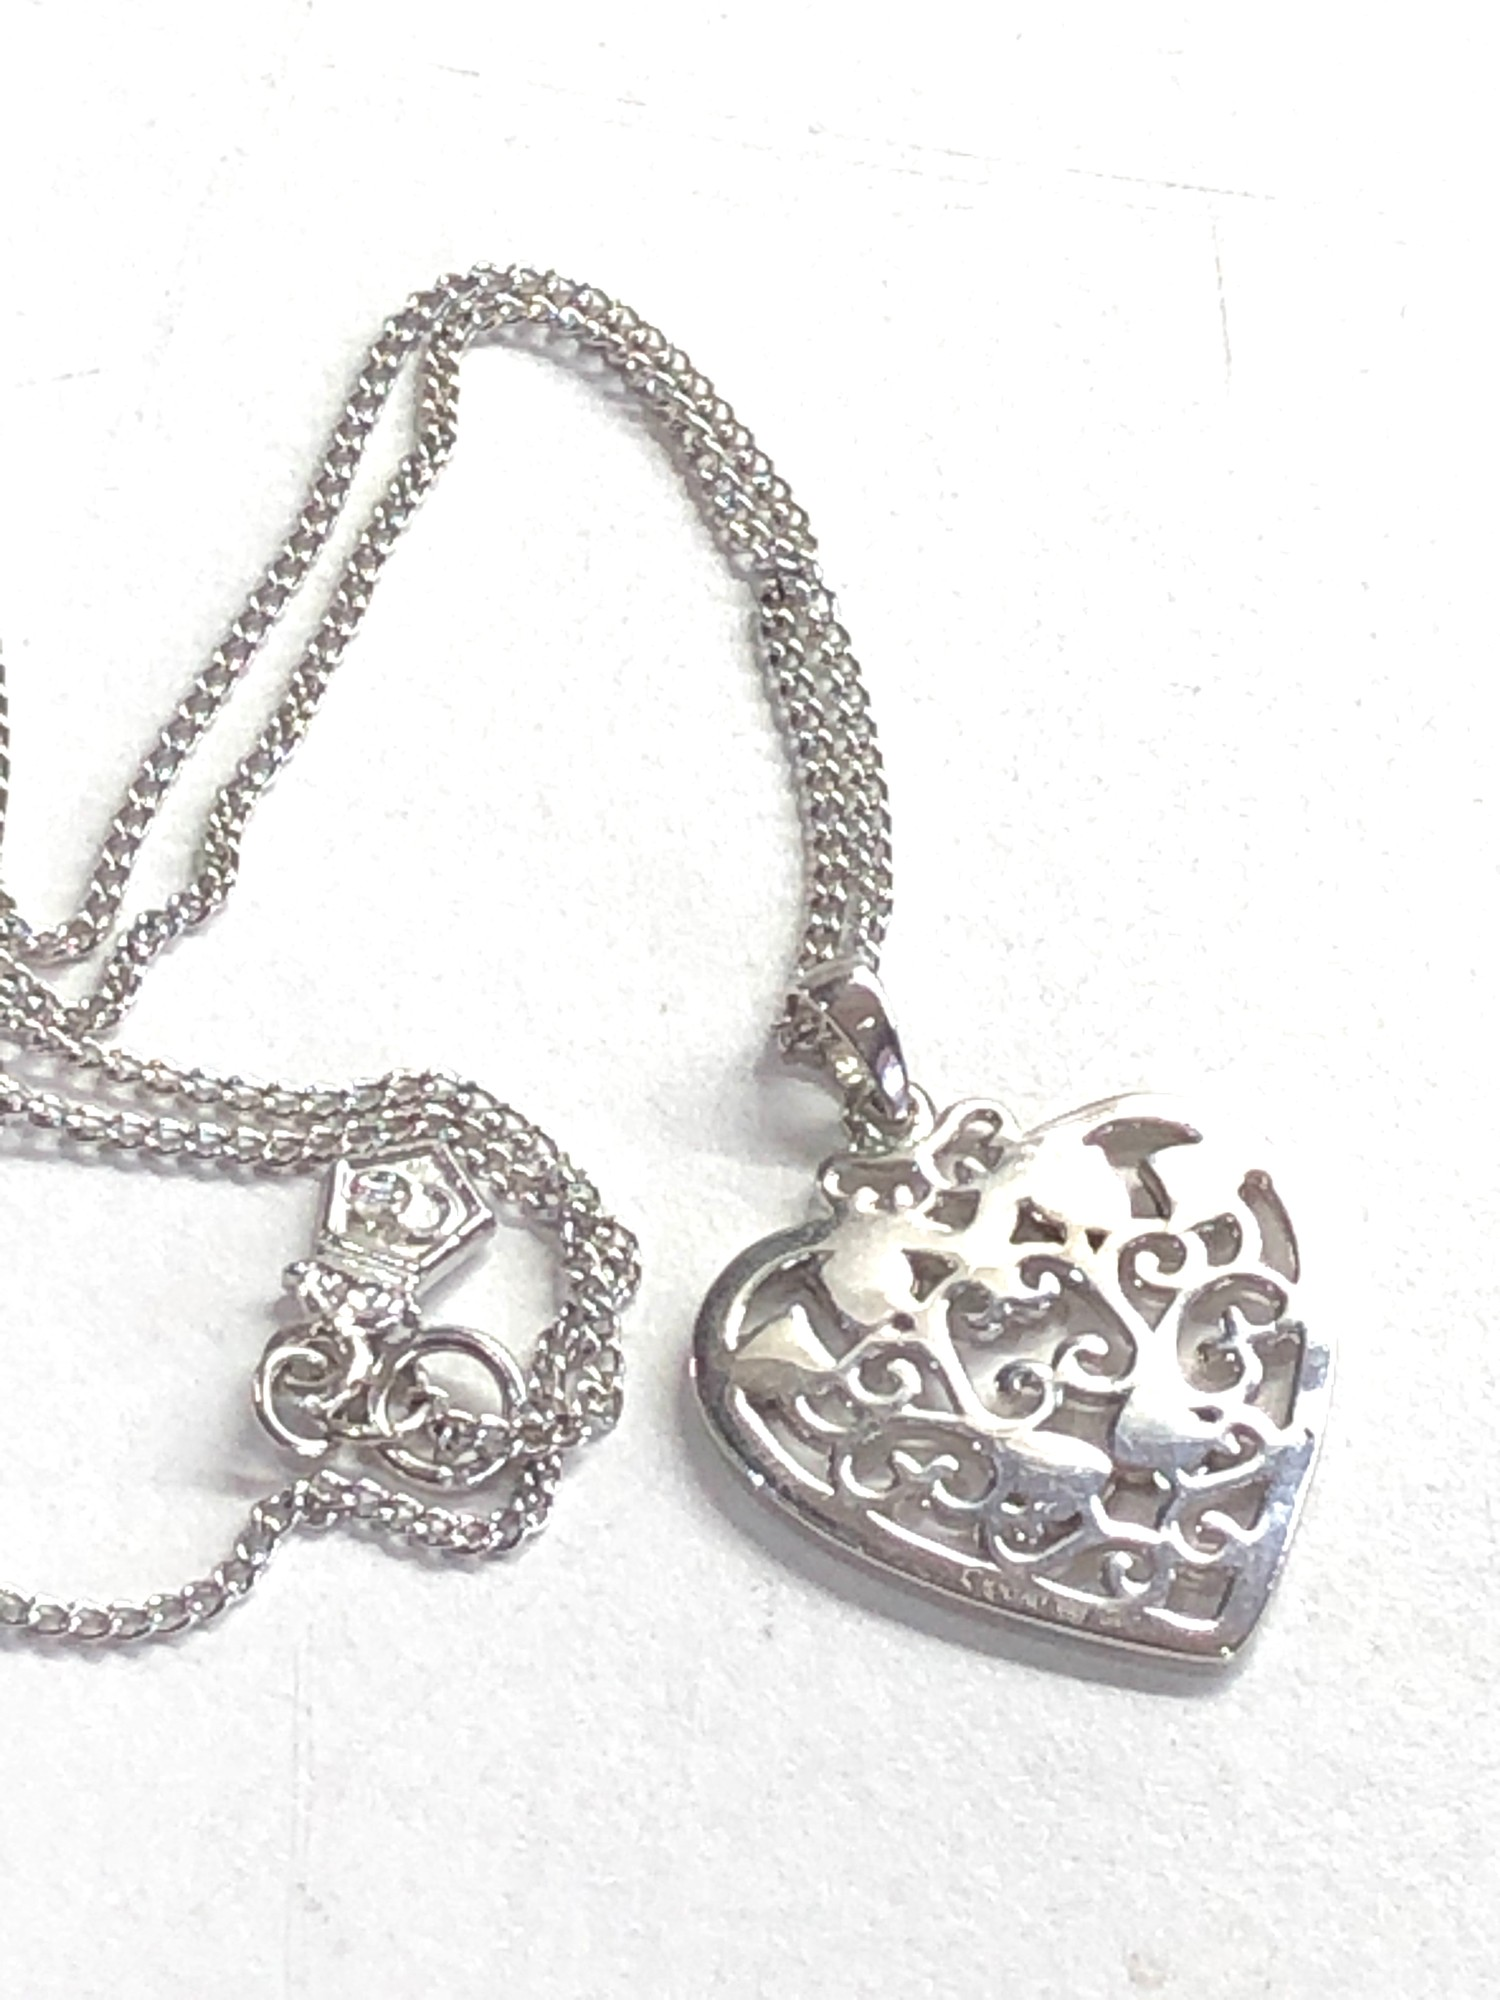 Clogau silver heart pendant and chain - Image 4 of 4